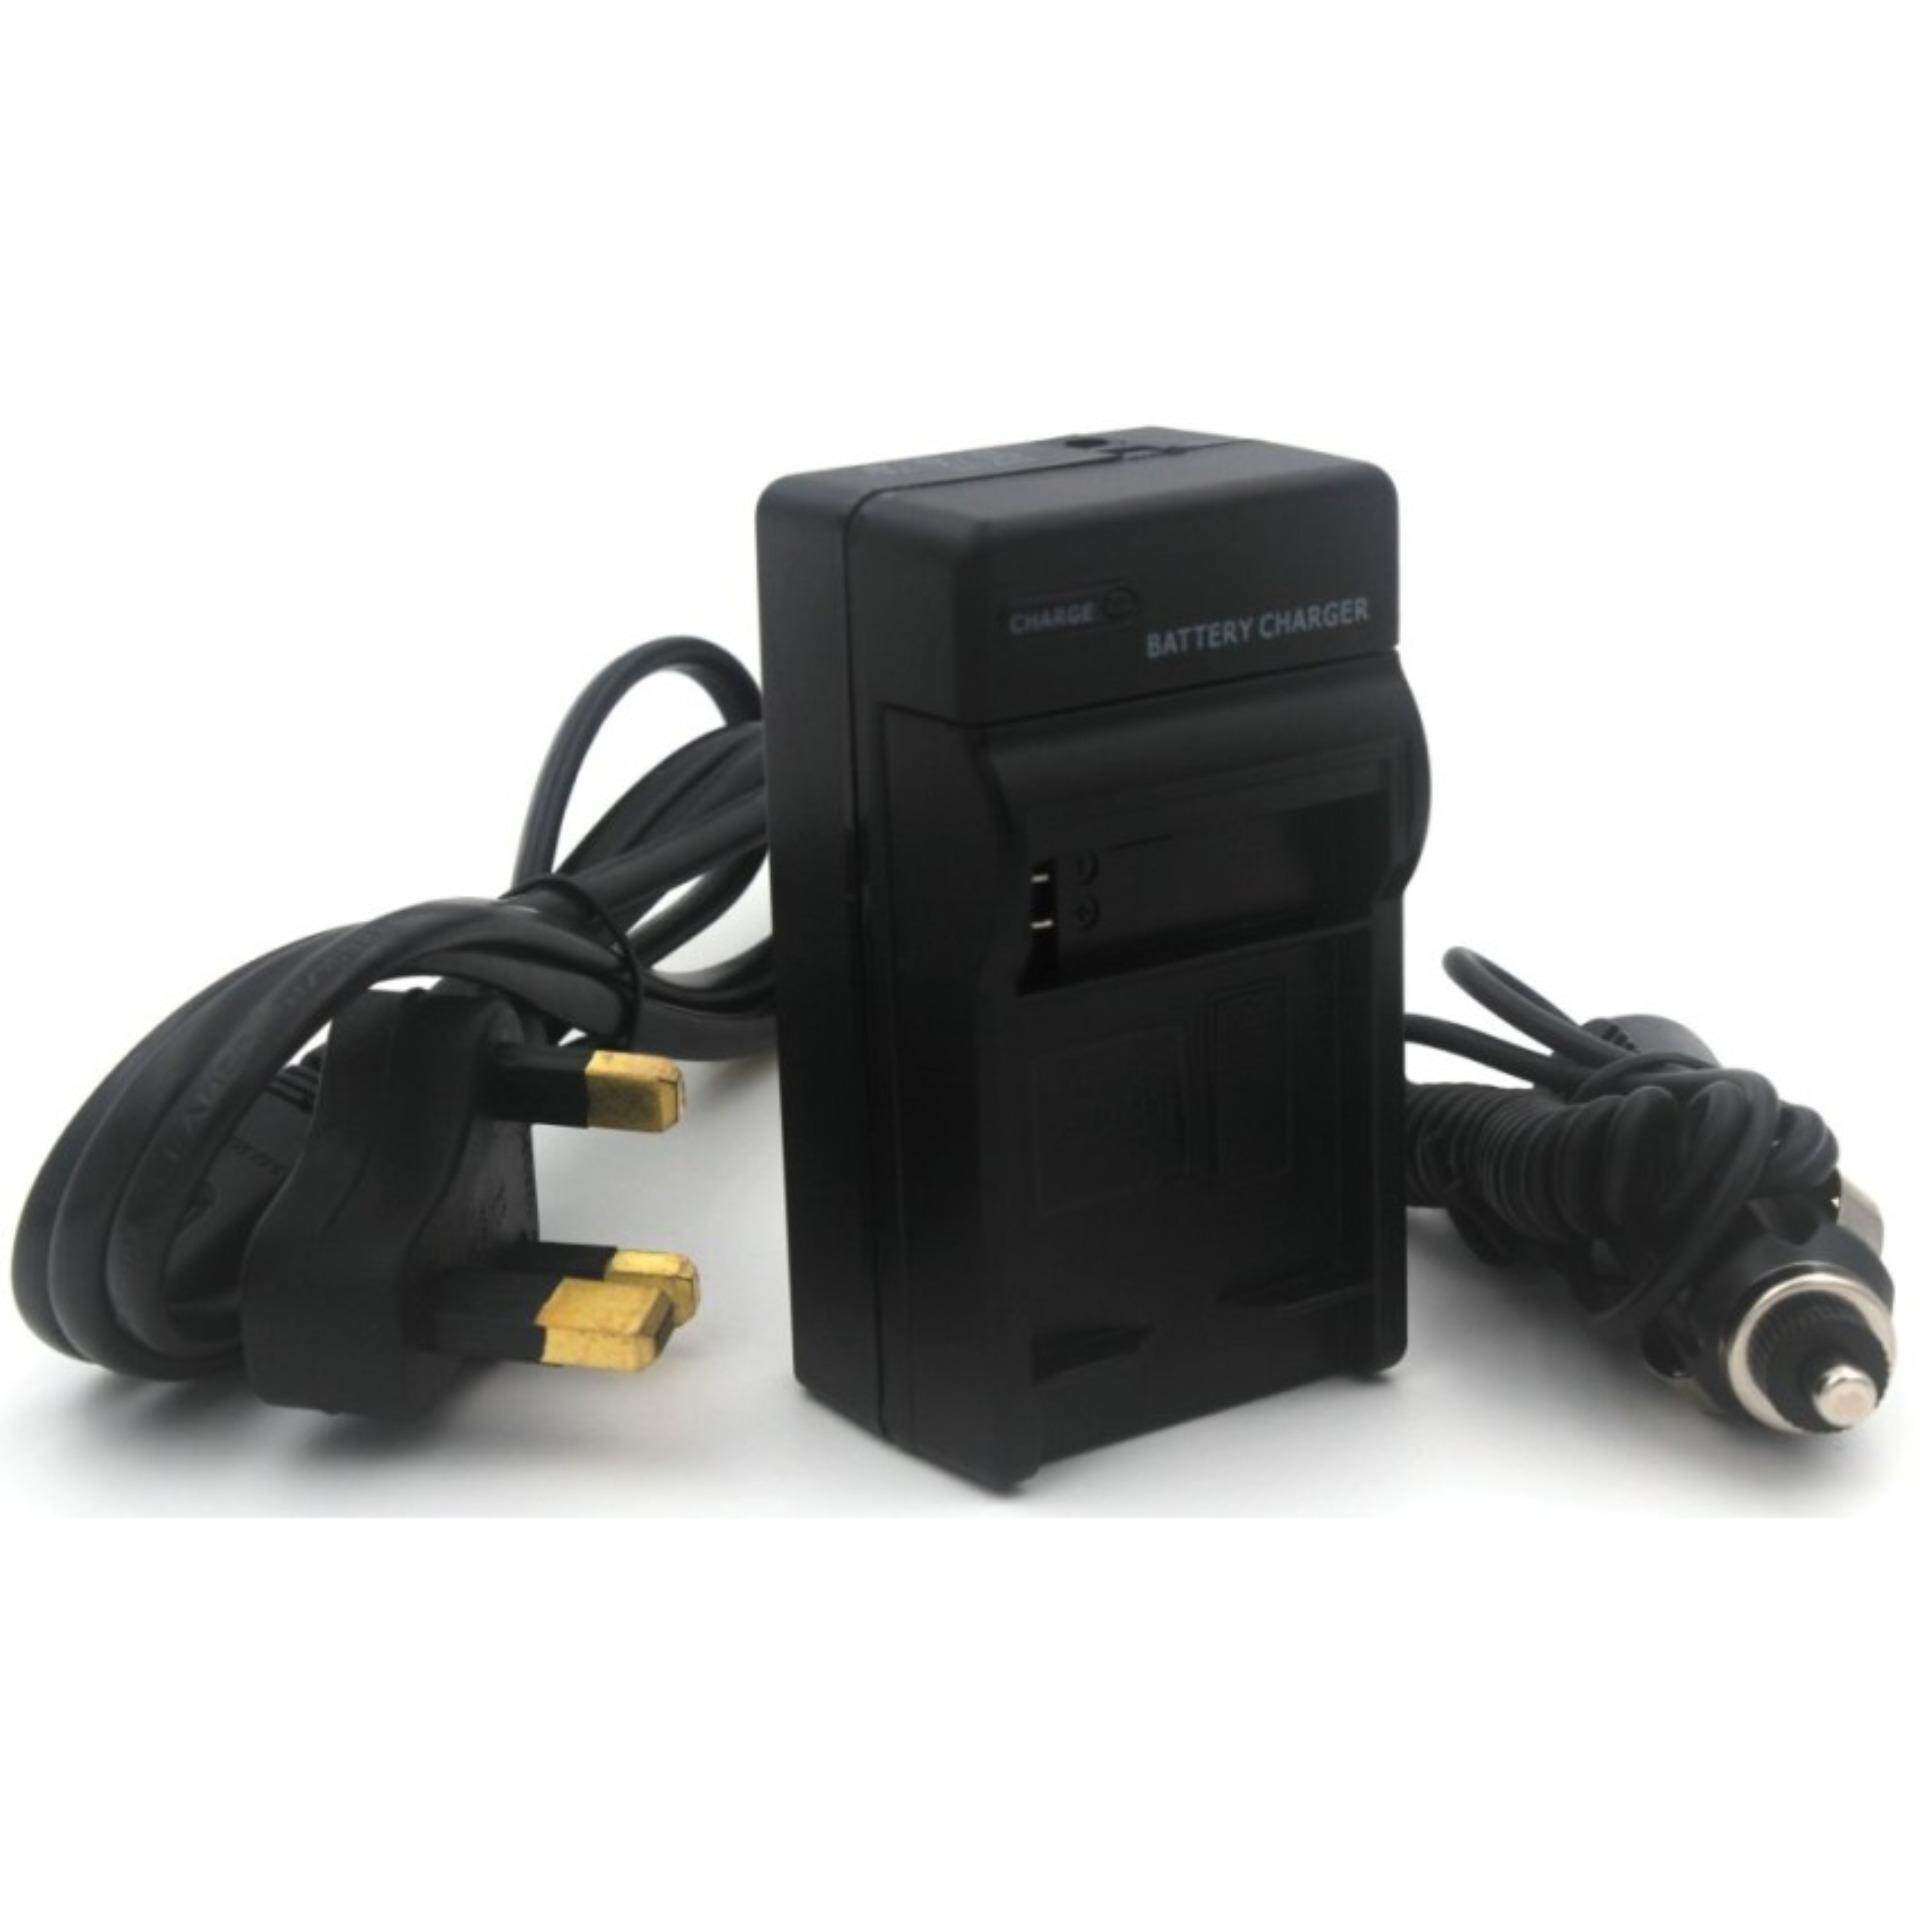 VW-VBD1 Charger for Panasonic NV-DS5, AG-BP25, AG-EZ1, AG-EZ20, NV-DE3, NV-DJ1, NV-DL1, NV-DP1, NV-DR1, NV-DS1, NV-DX1, NV-DX100, NV-DX110 Camera and More with UK Power Plug and Car Adapter